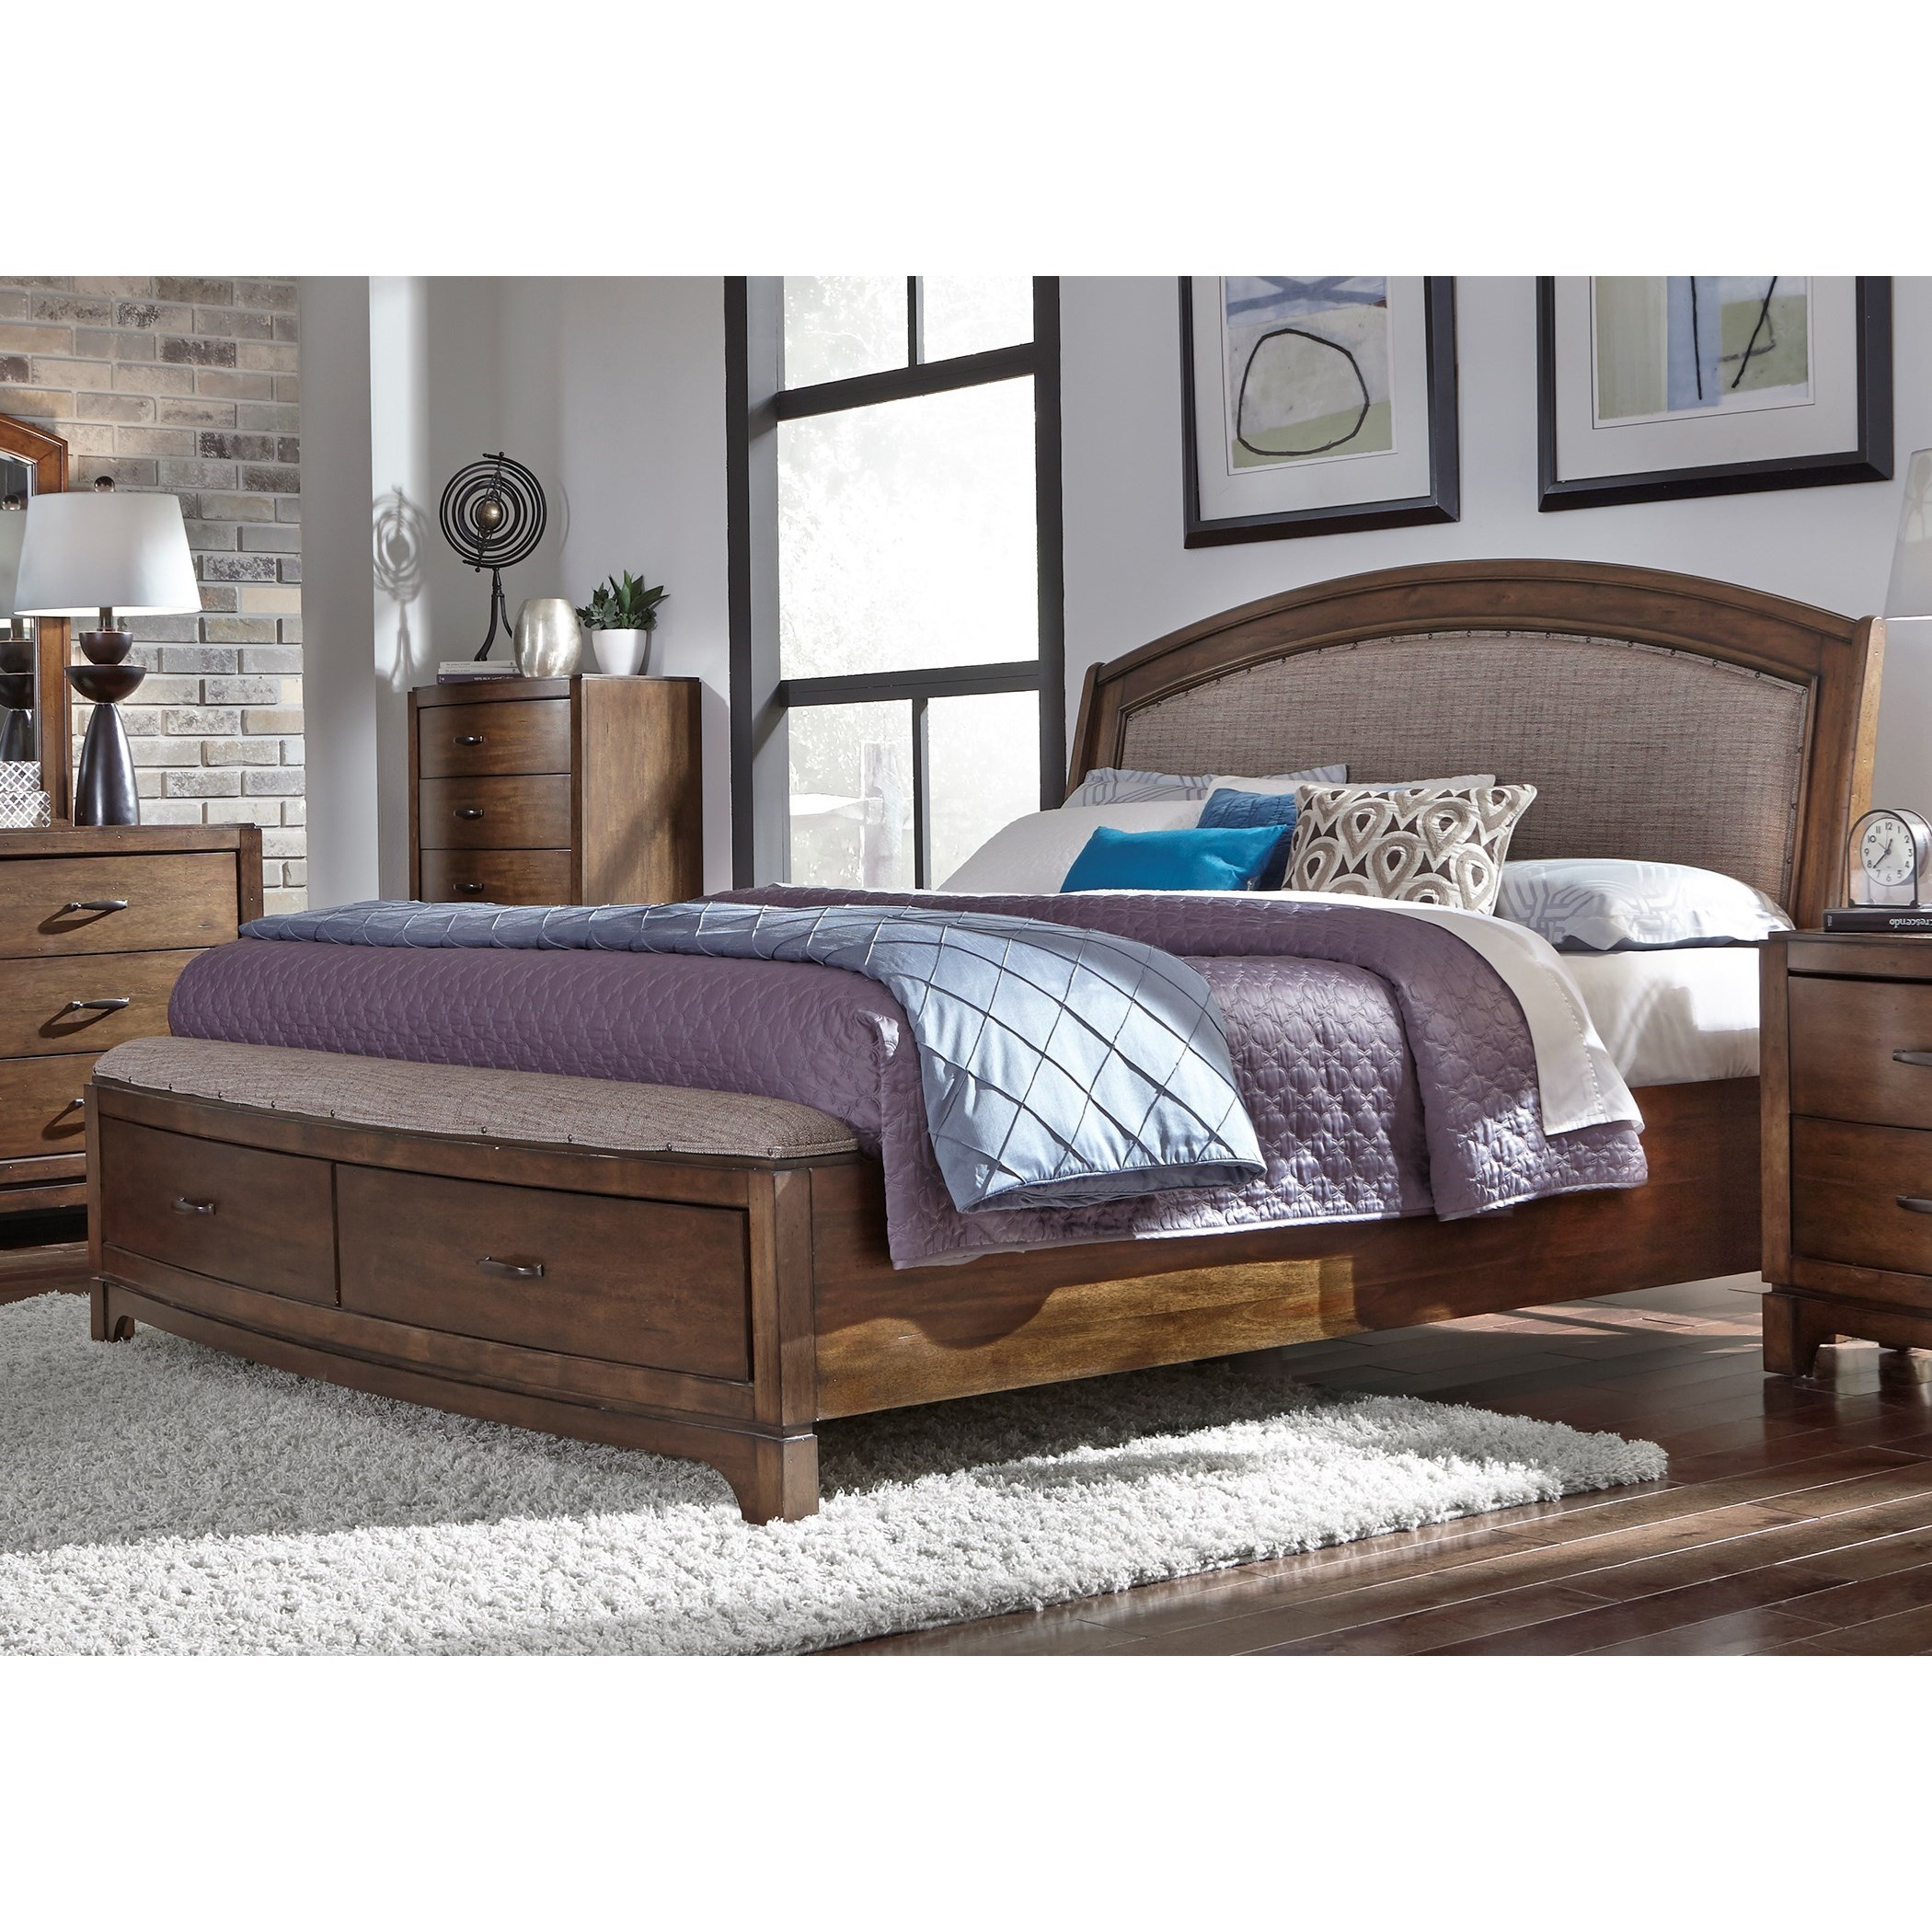 Liberty Furniture Avalon Iii King Storge Bed With Upholstered Headboard Miskelly Furniture